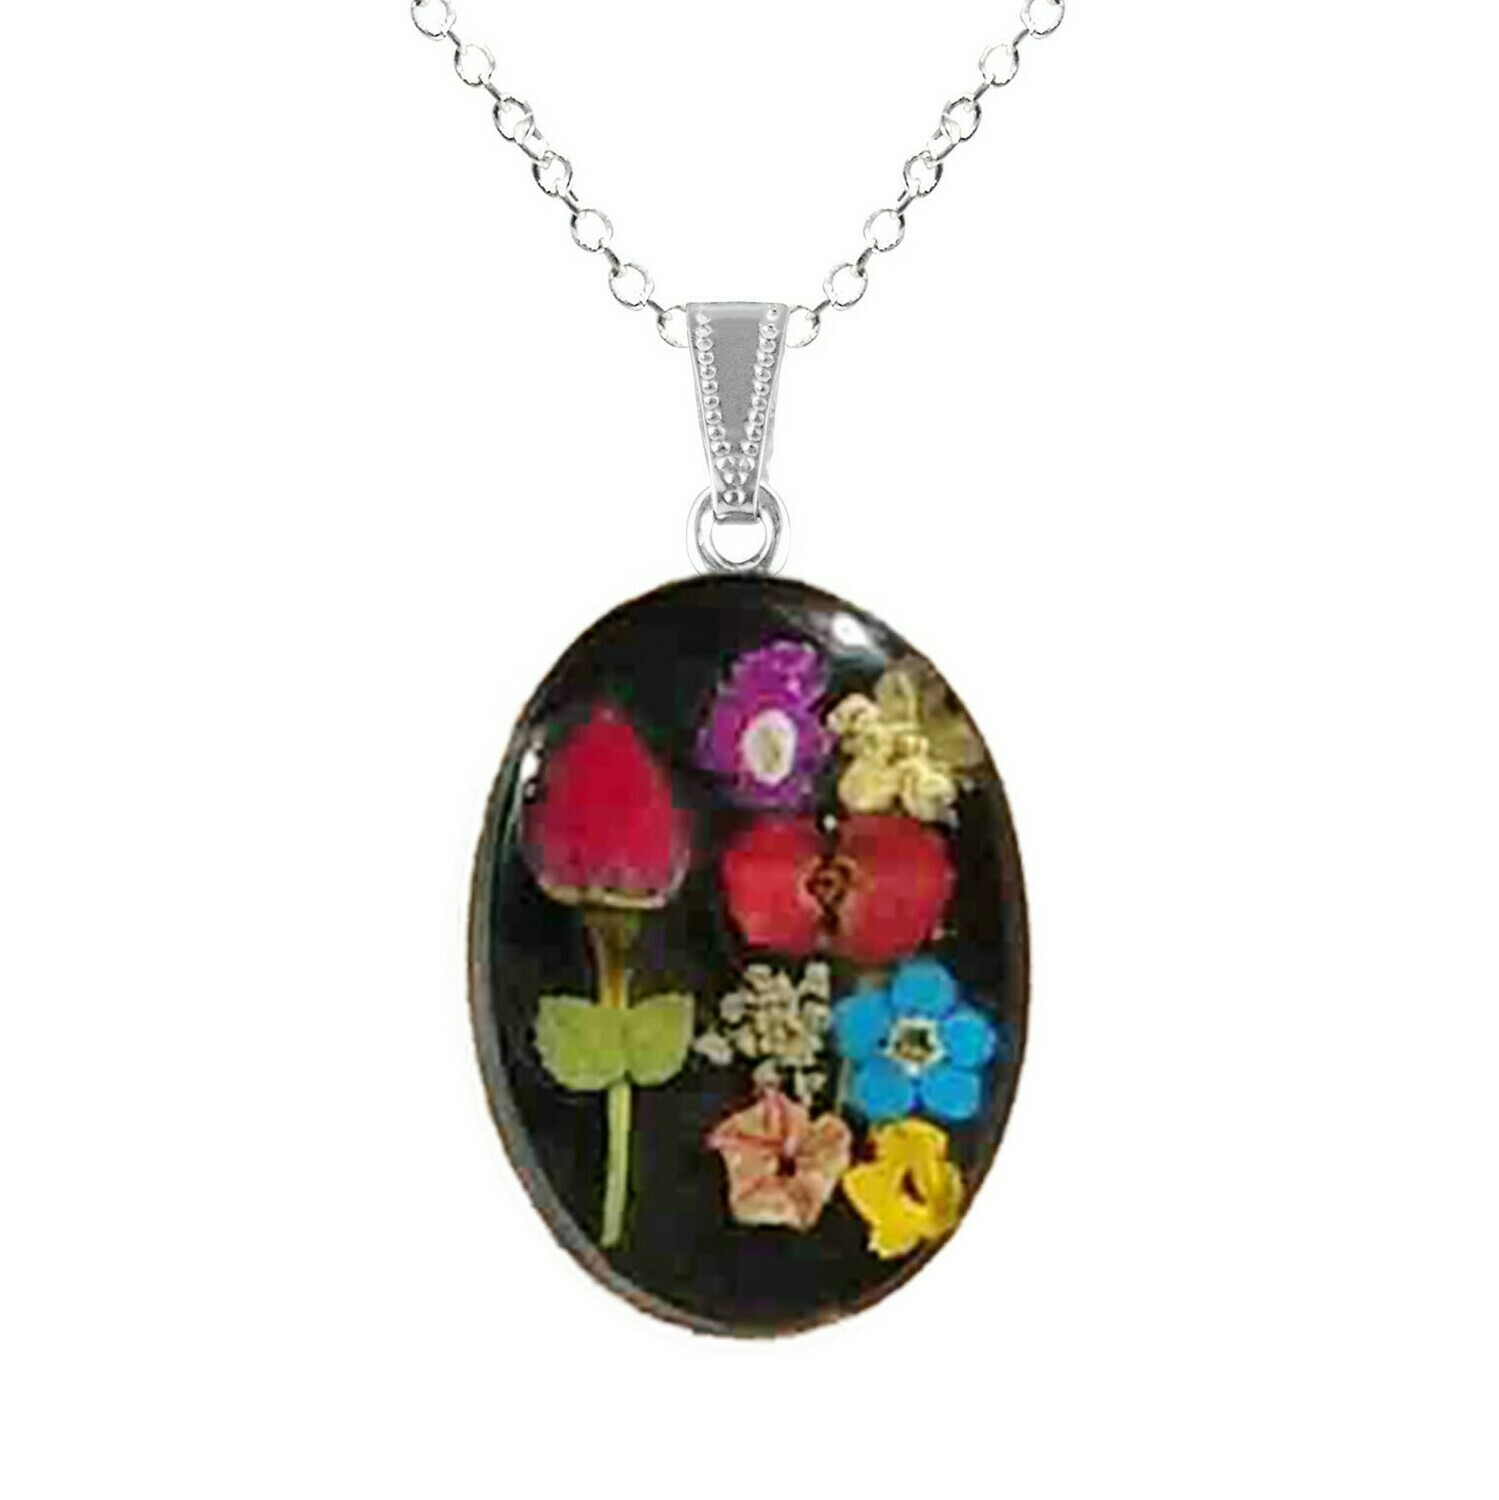 Rose & Mix Flowers Necklace, Medium Oval, Black Background